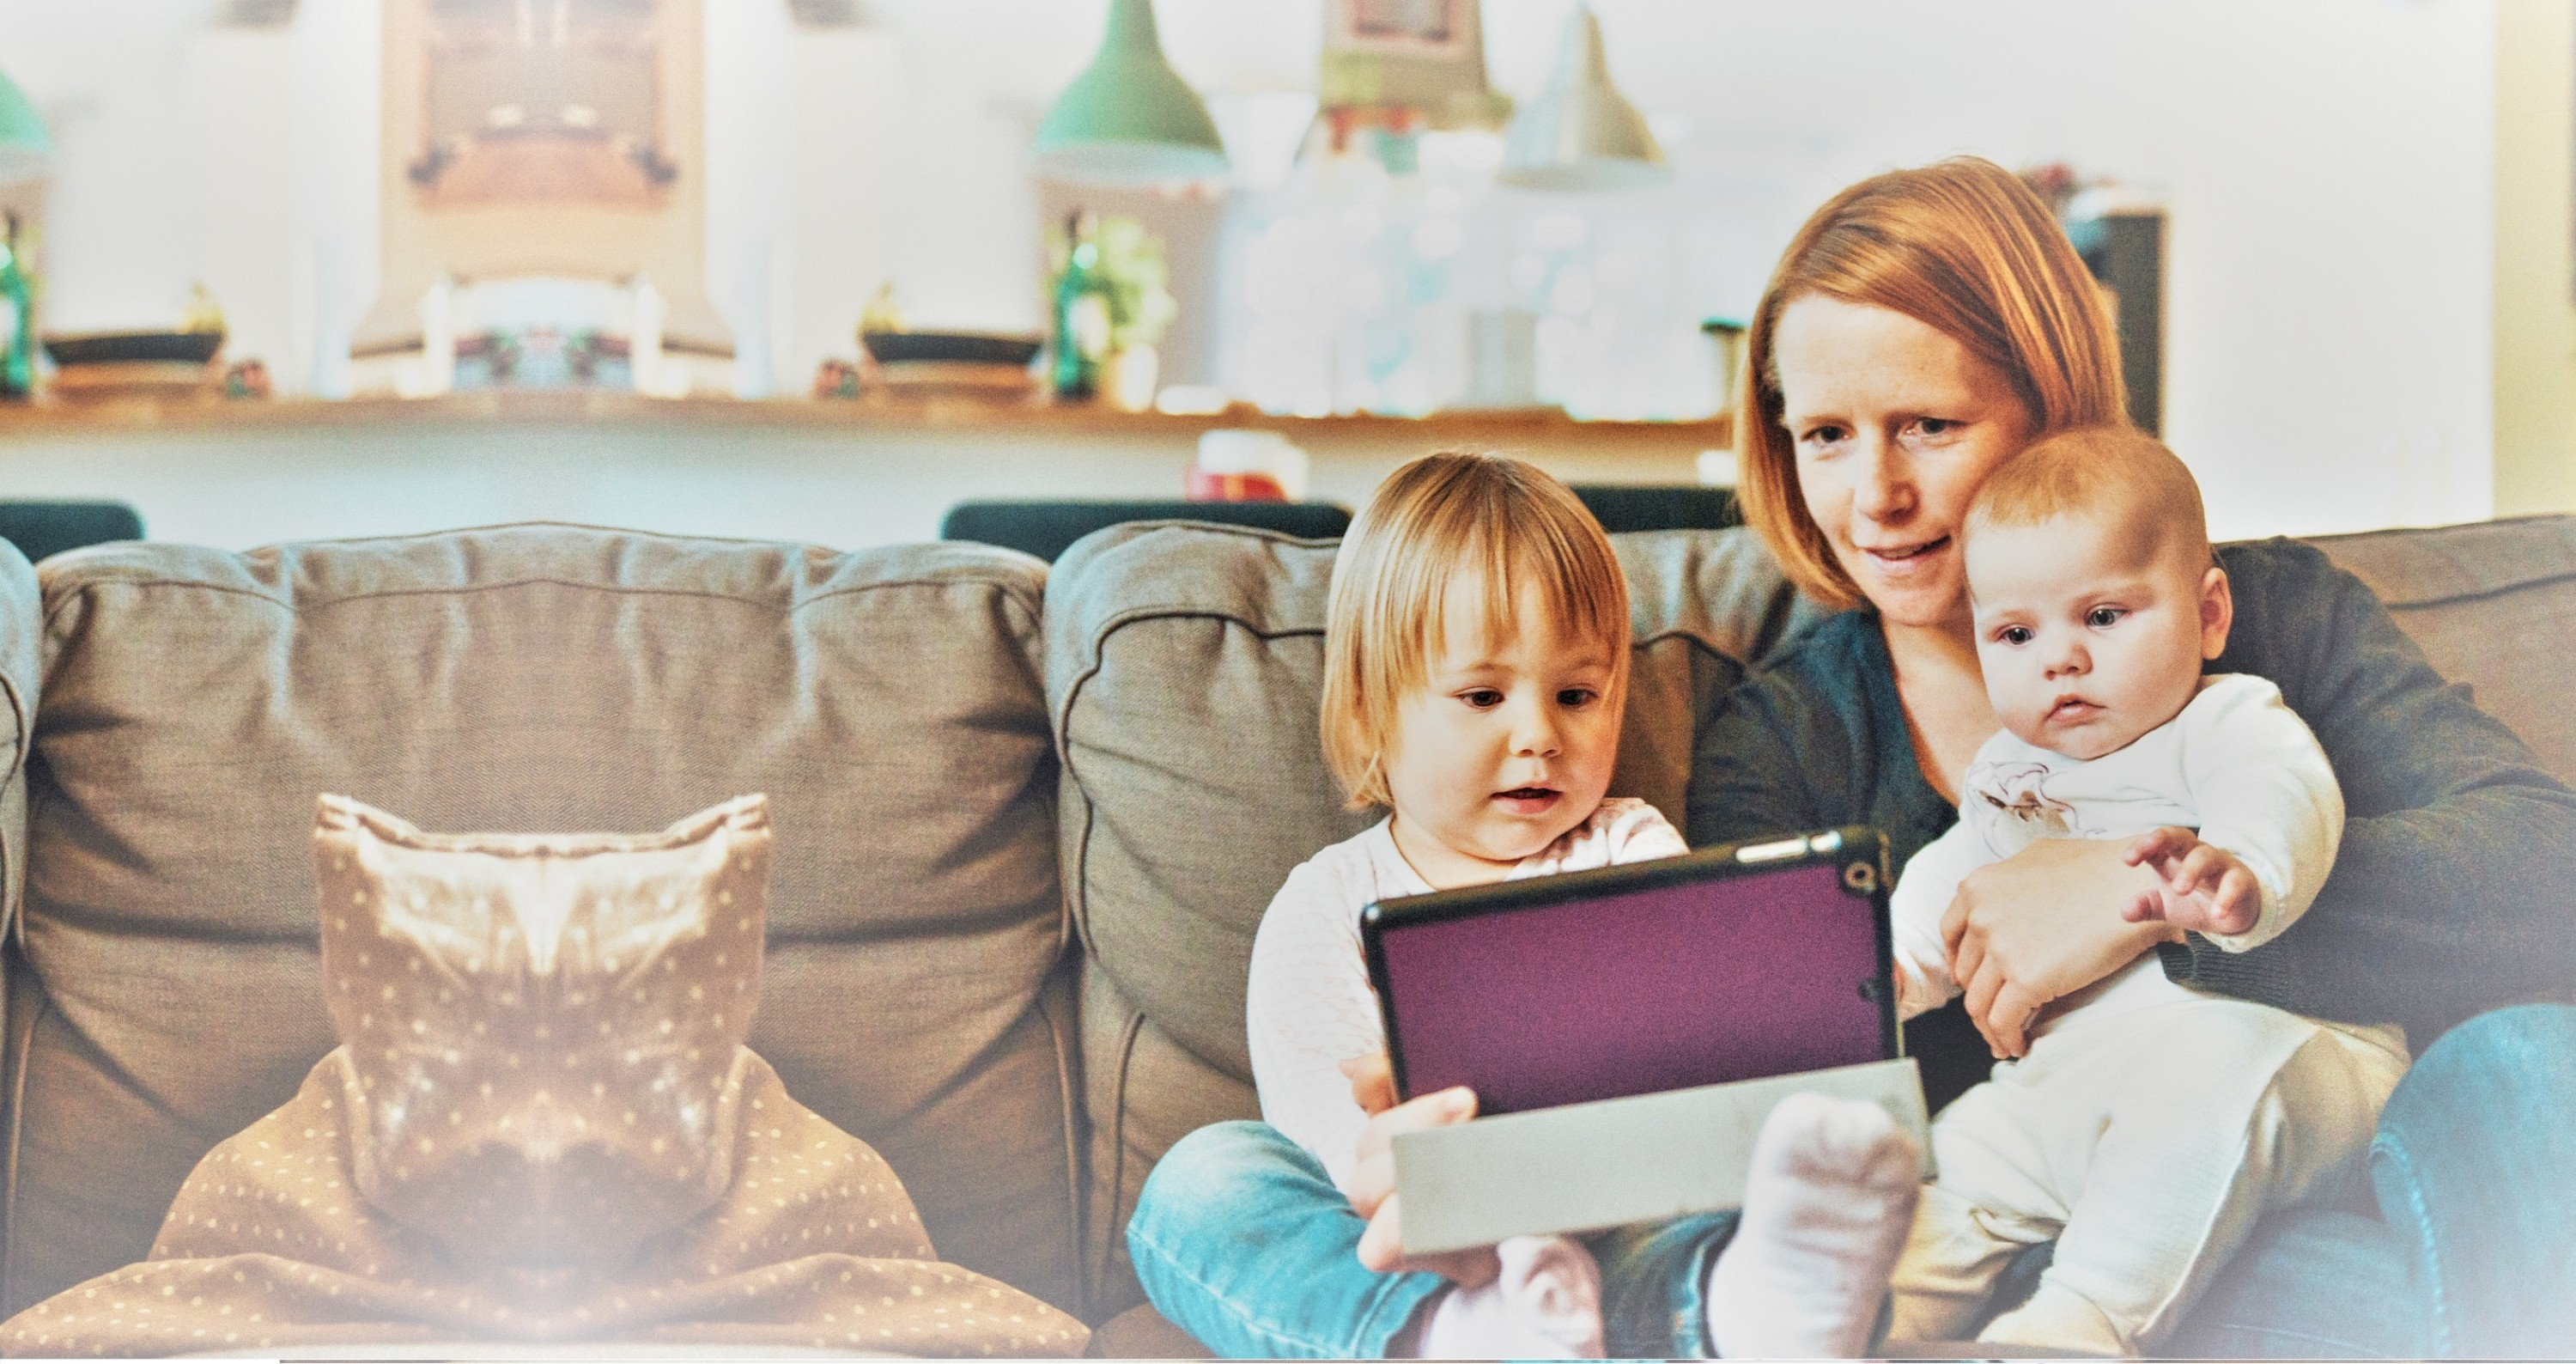 woman and children on couch looking at tablet